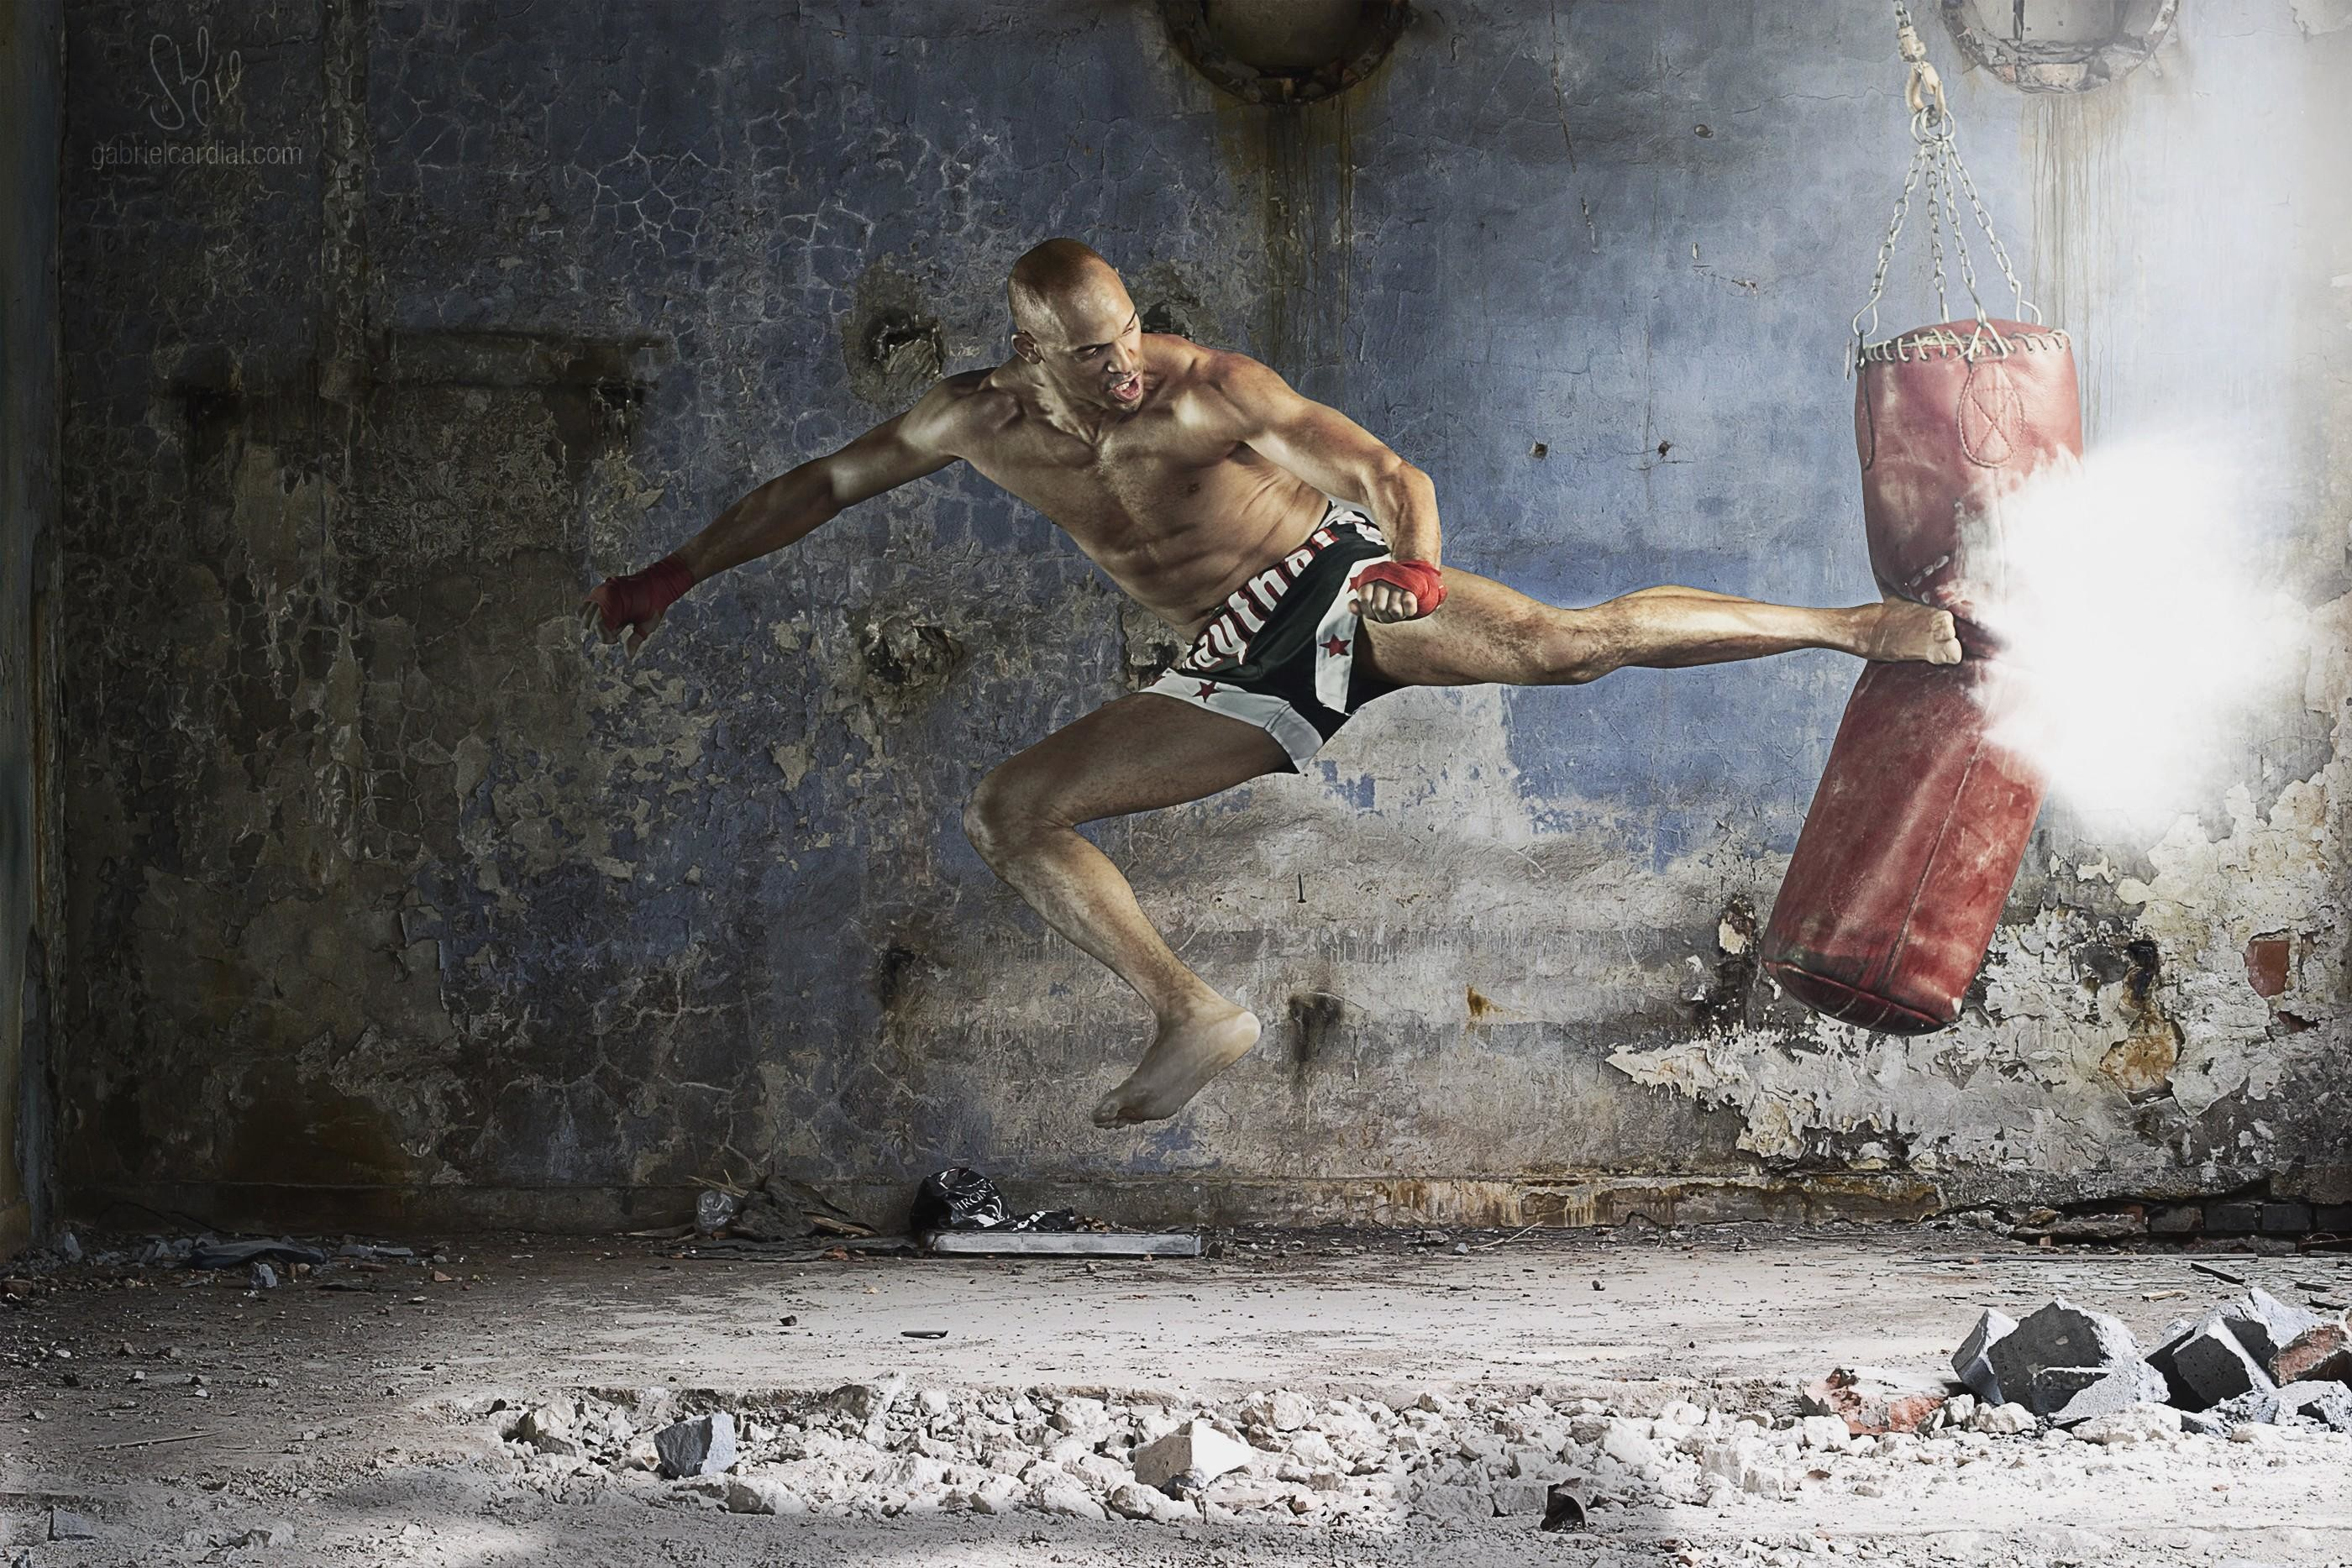 Kickboxing Wallpaper the best 70 images in 2018 2800x1867